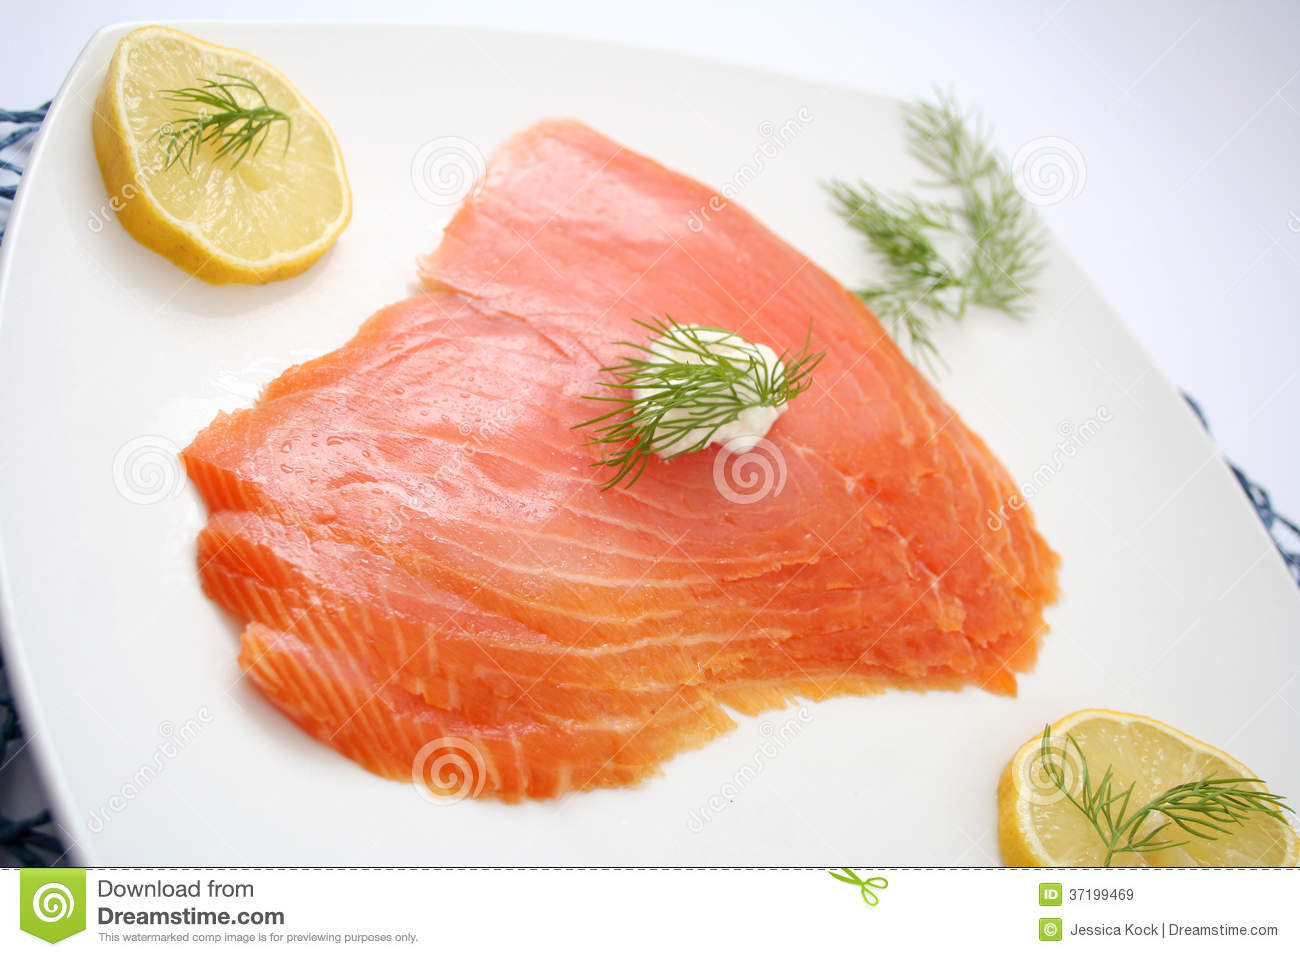 how to cook slice fish